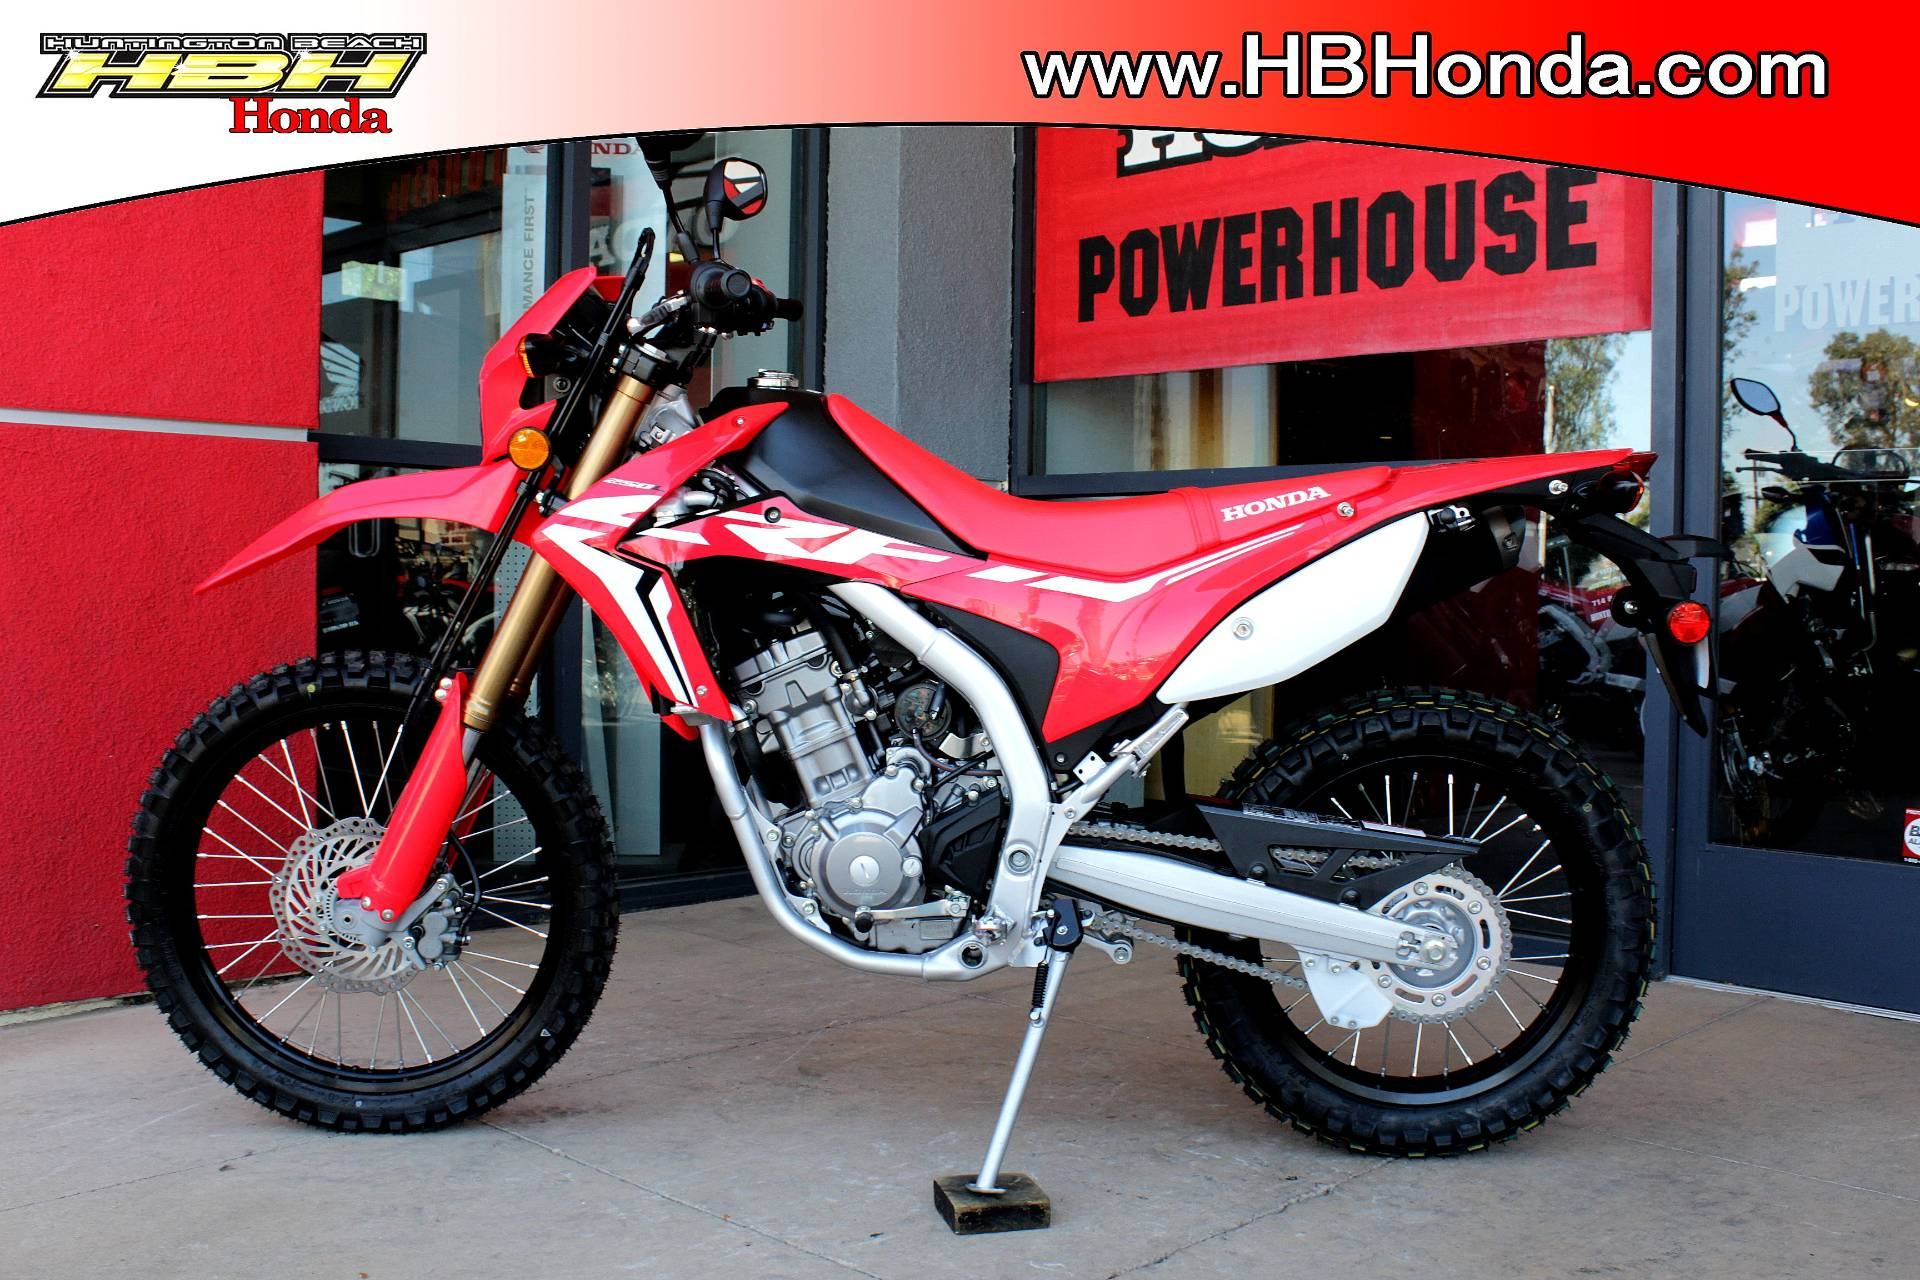 2019 Honda CRF250L ABS in Huntington Beach, California - Photo 1